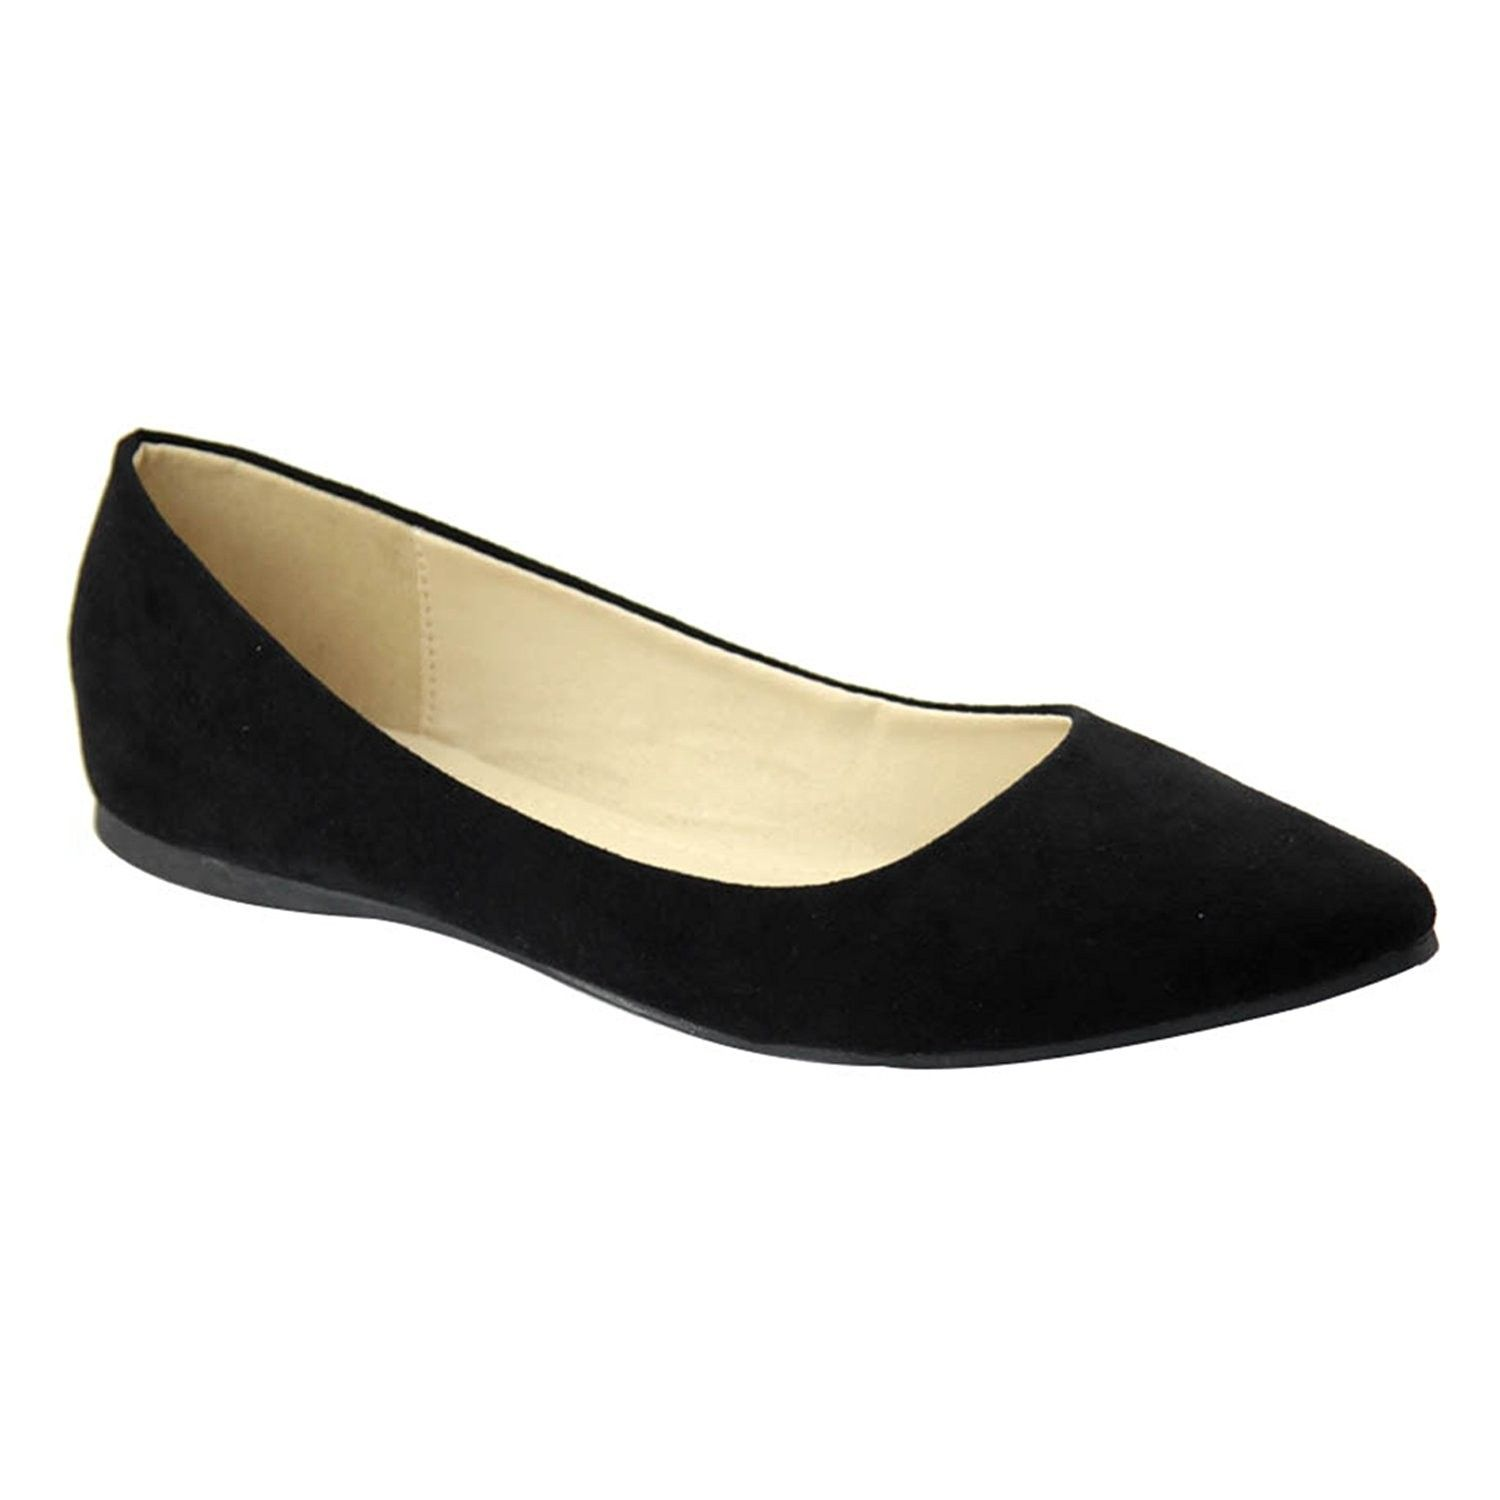 Dressy flats shoes, Flat shoes outfit